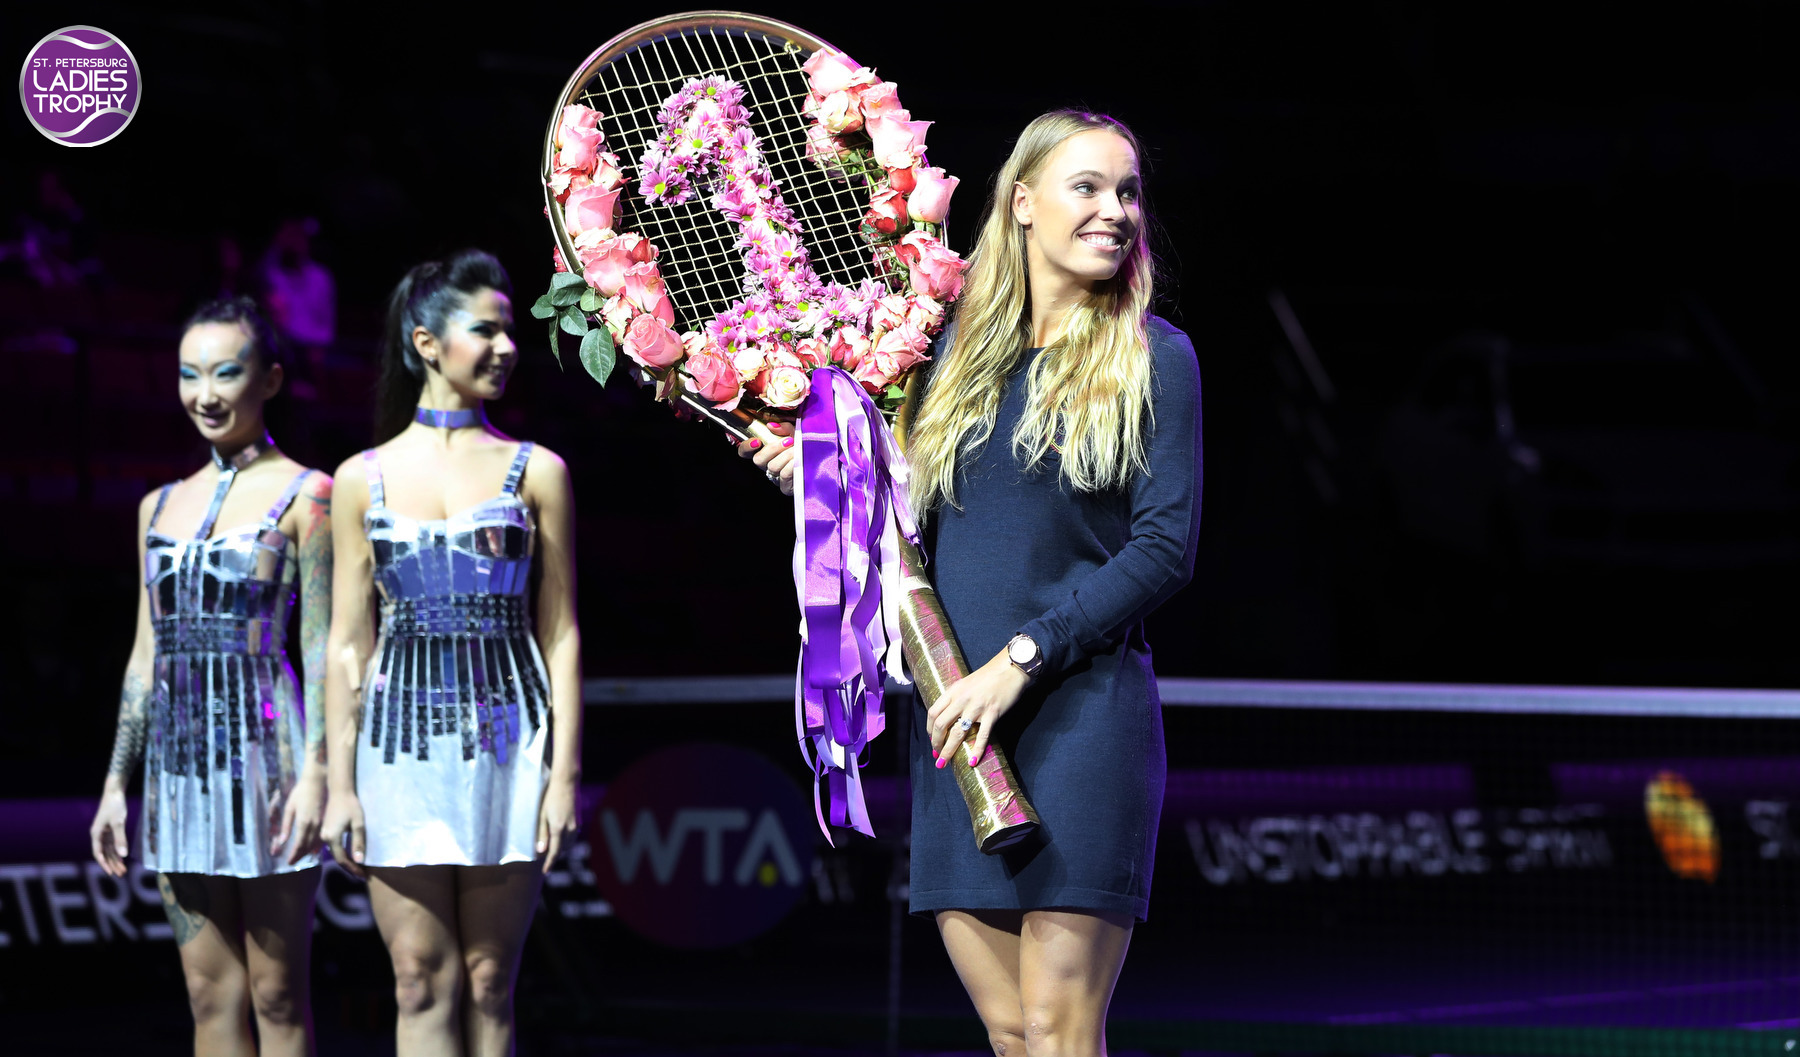 Caroline Wozniacki at St.Petersburg Ladies Trophy